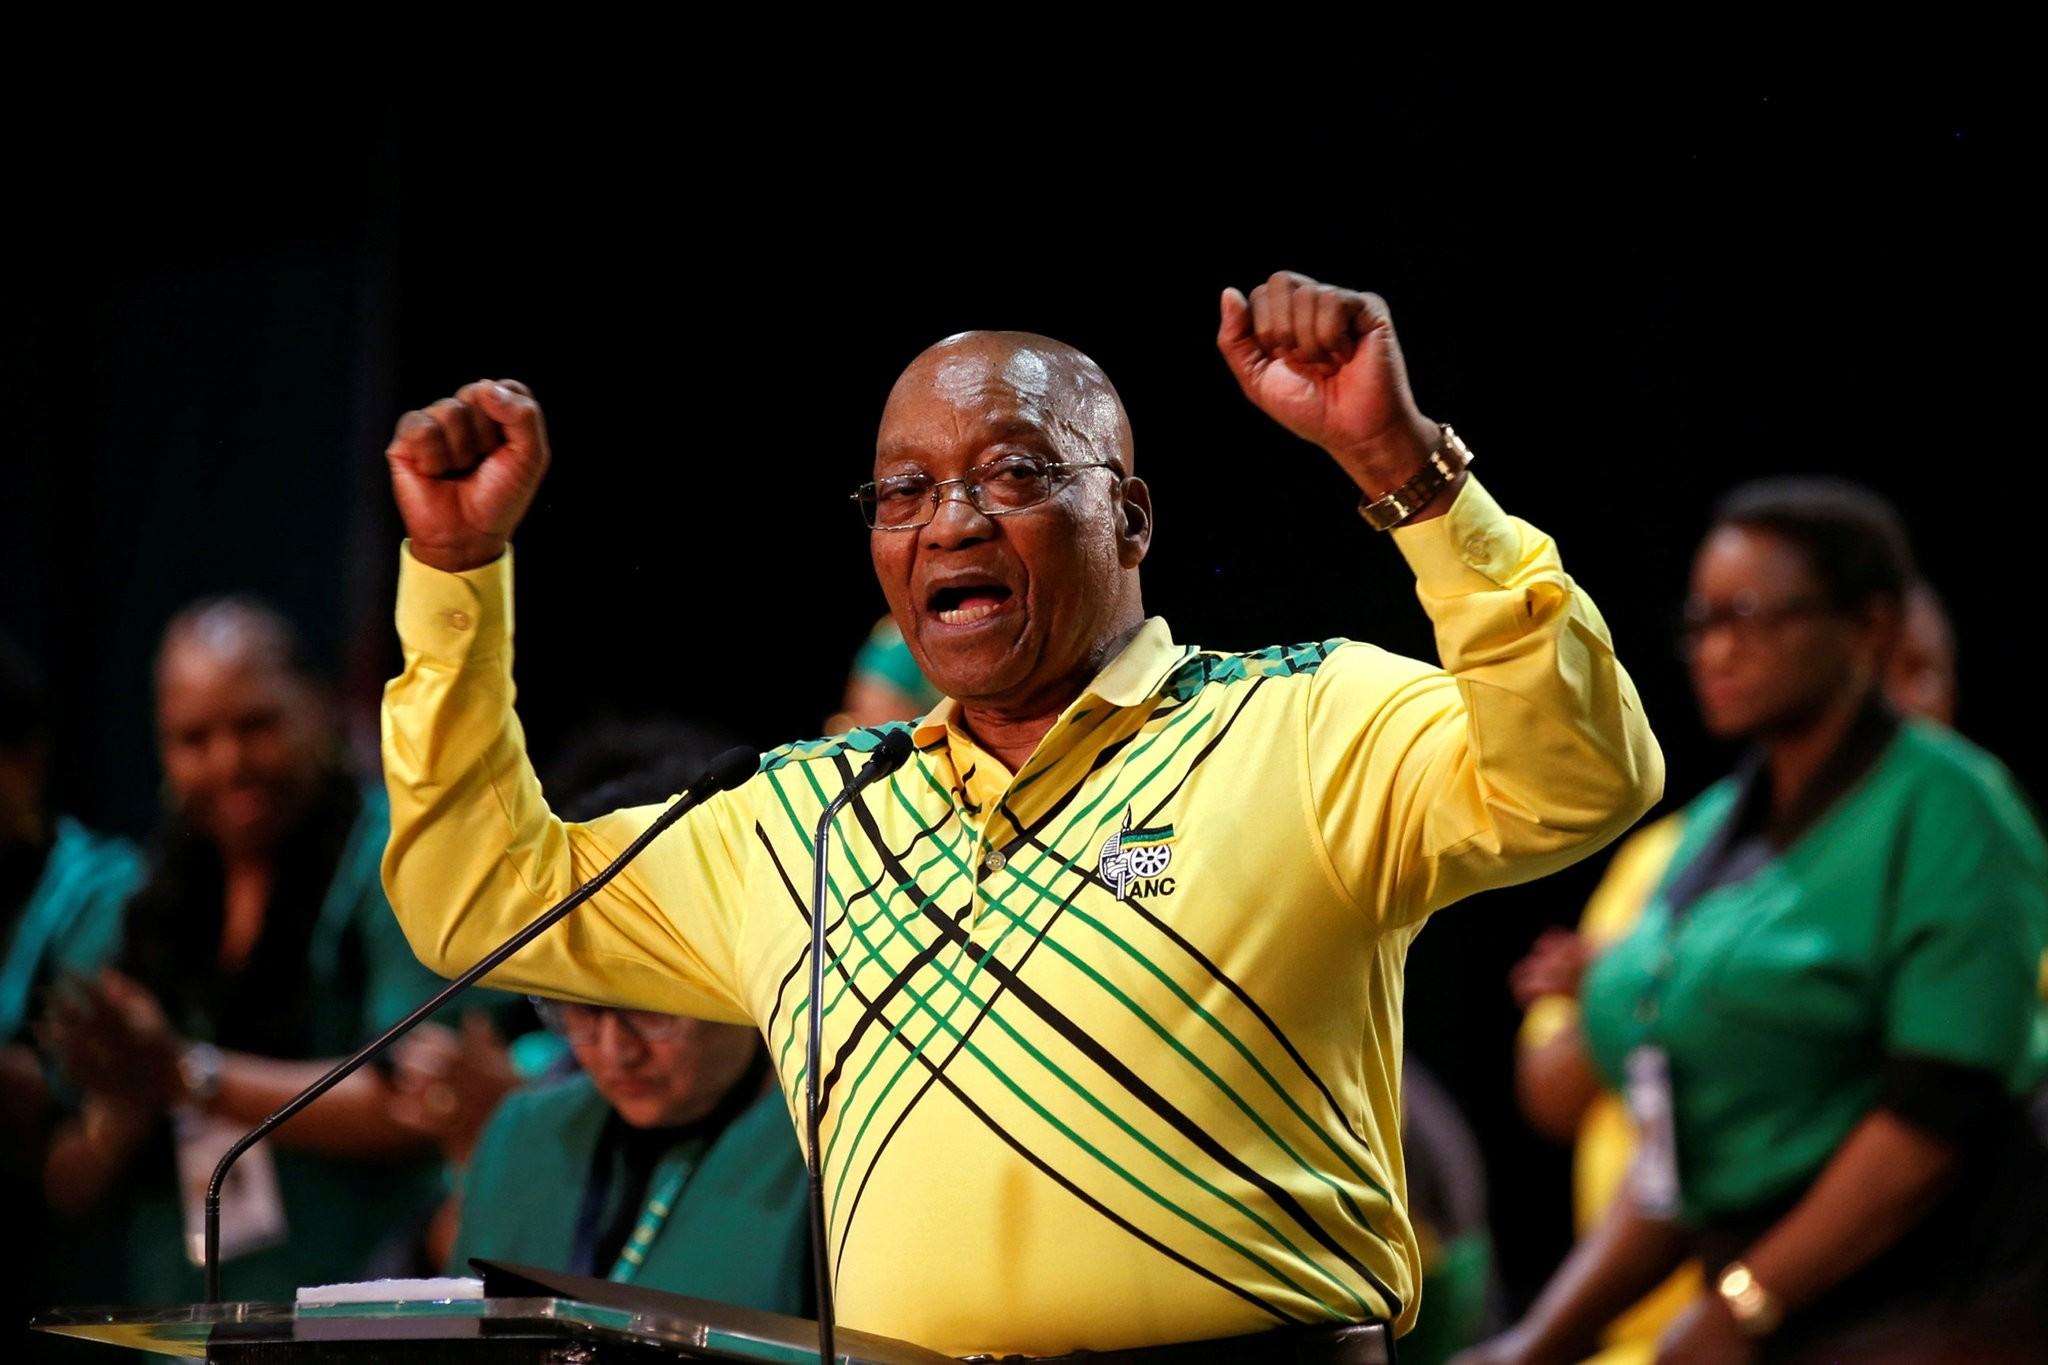 President of South Africa Jacob Zuma gestures to his supporters at the 54th National Conference of the ruling African National Congress (ANC) at the Nasrec Expo Centre in Johannesburg, South Africa December 16, 2017. (REUTERS Photo)